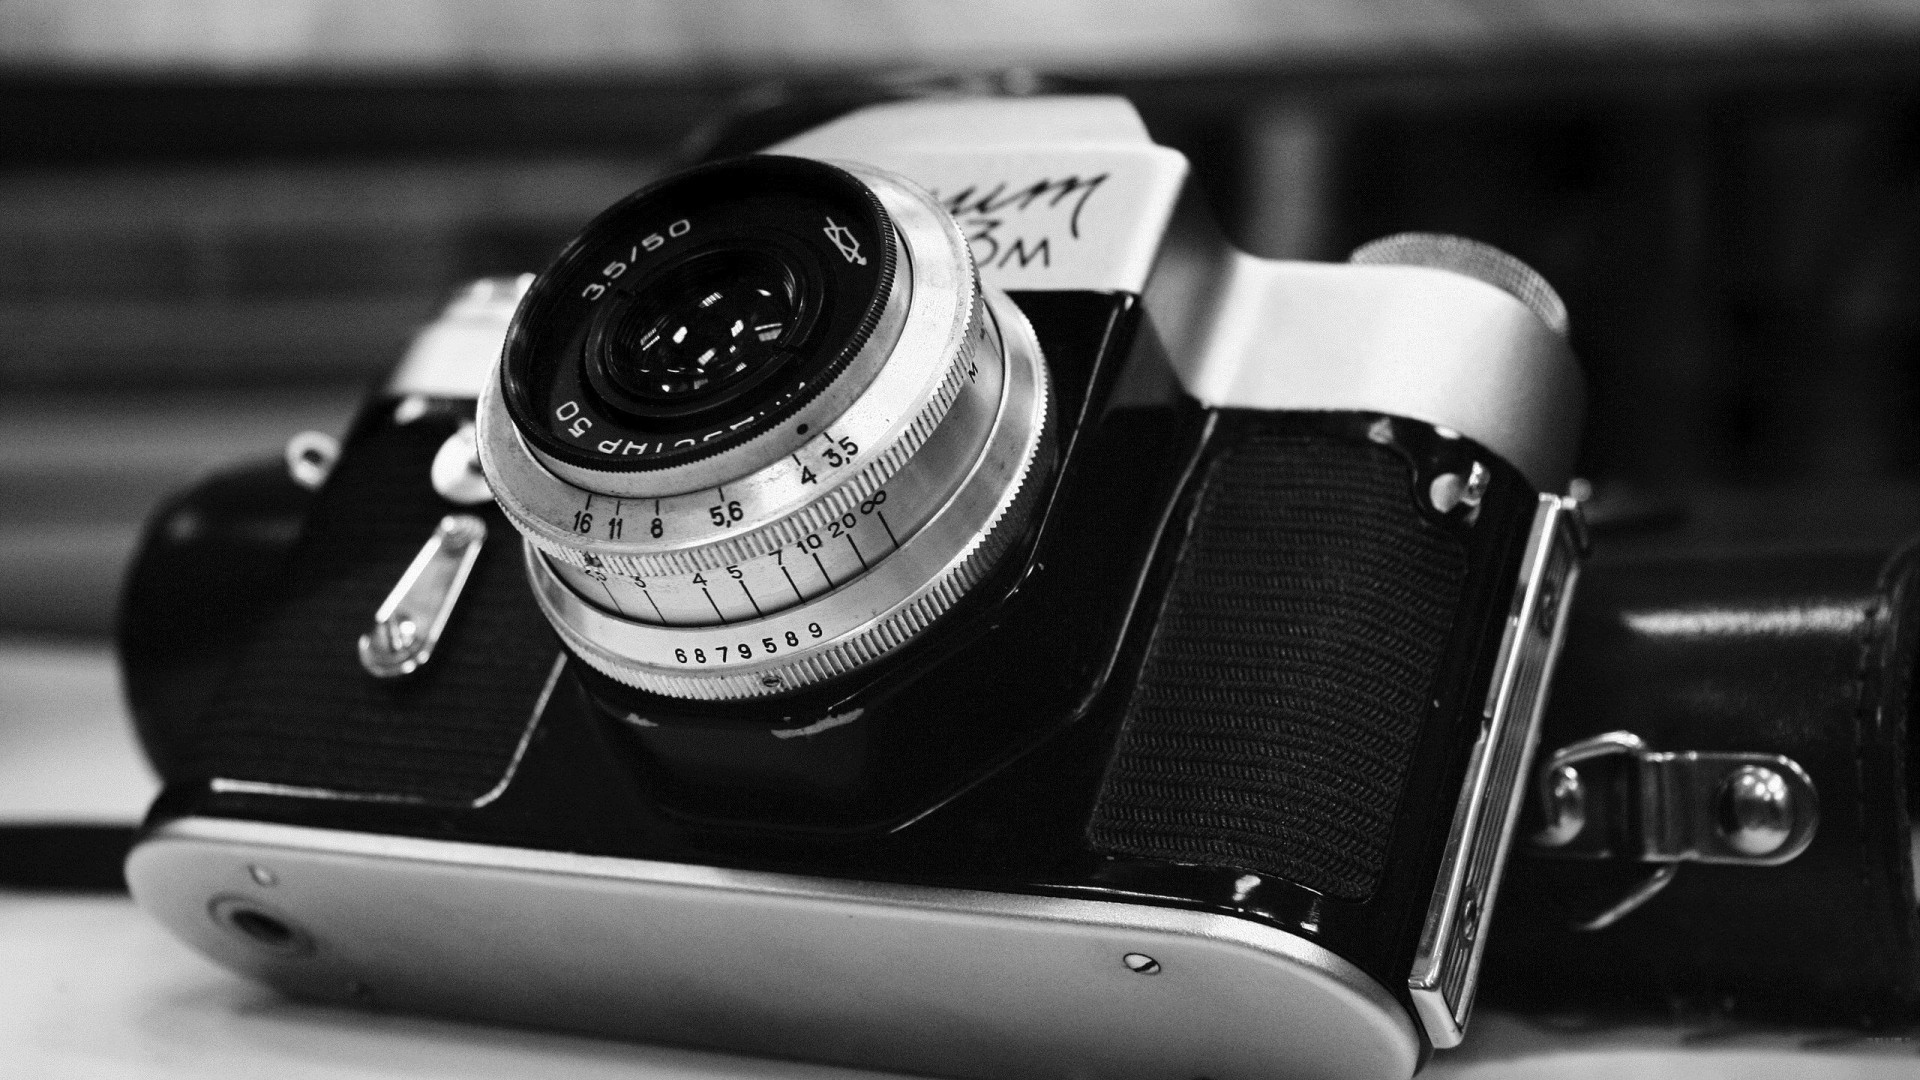 Camera black and white photography hd wallpaper